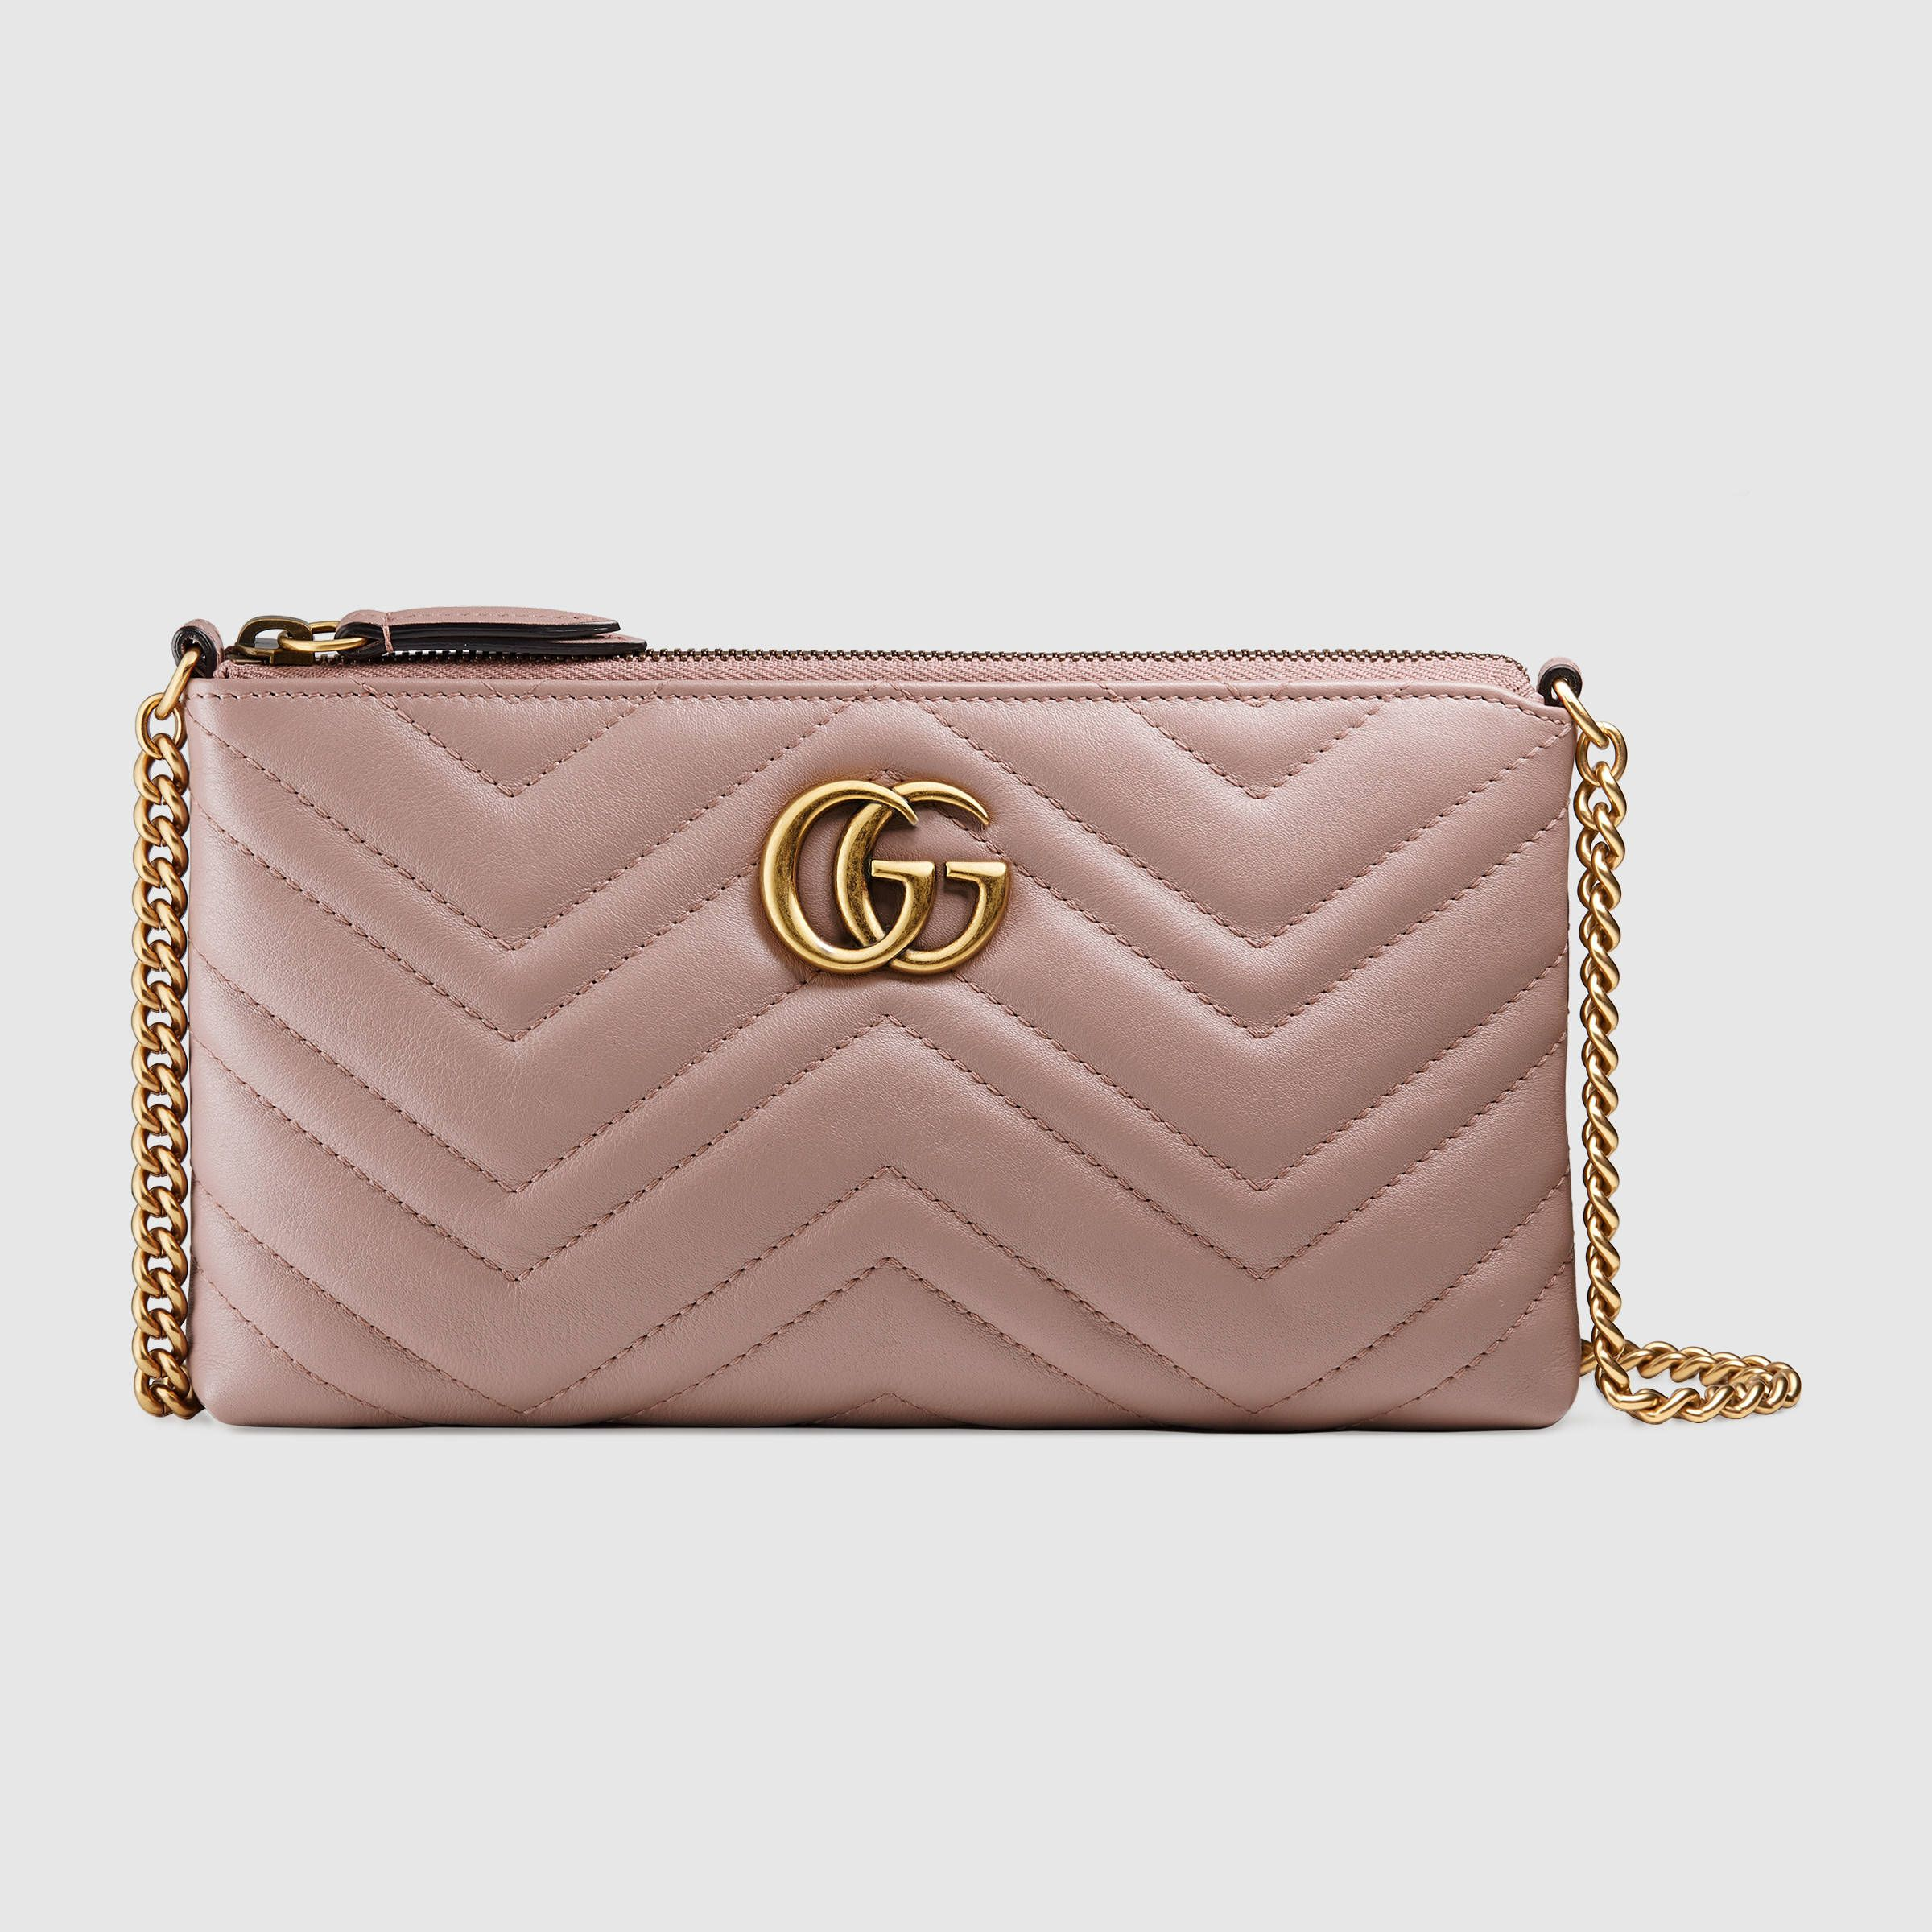 1a988800084 Gucci Zip-Around Wallet. GG Marmont mini chain bag C  950 nude matelassé  leather